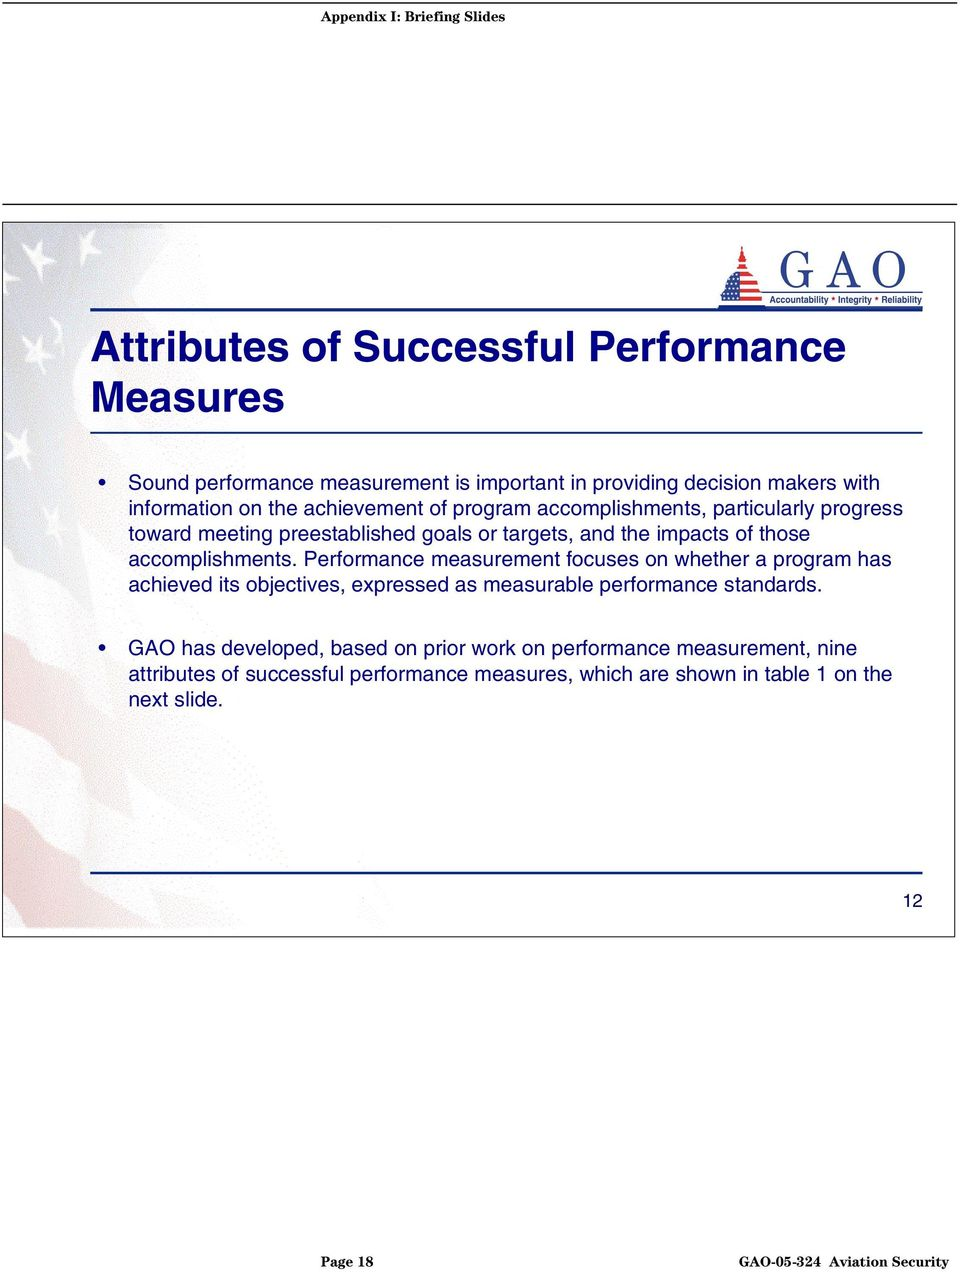 accomplishments. Performance measurement focuses on whether a program has achieved its objectives, expressed as measurable performance standards.